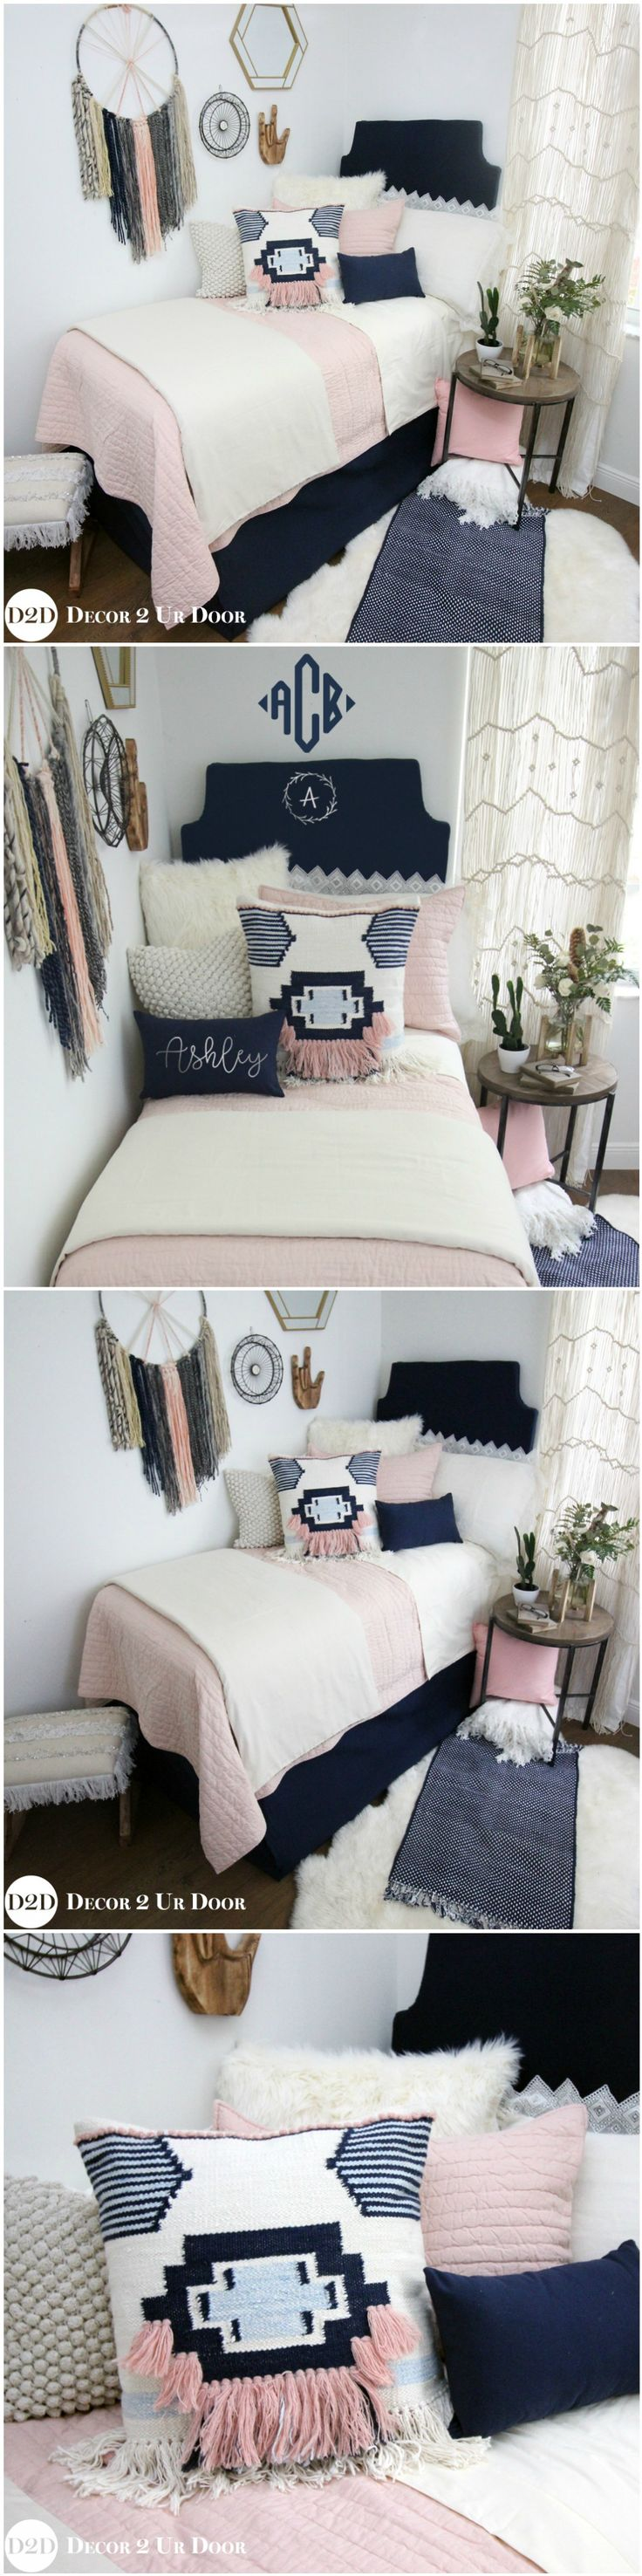 Decorating a dorm room? Check out Décor 2 Ur Door for the latest dorm room decorating trends. Dorm Room Décor. Designer dorm headboard, dorm bed scarf, dorm bed skirt/dorm dust ruffle, monogram dorm room pillows, dorm room window treatment, lofted dorm bed décor, dorm room wall monogram, chair cover for dorm room, modern dorm room furniture and so much more!